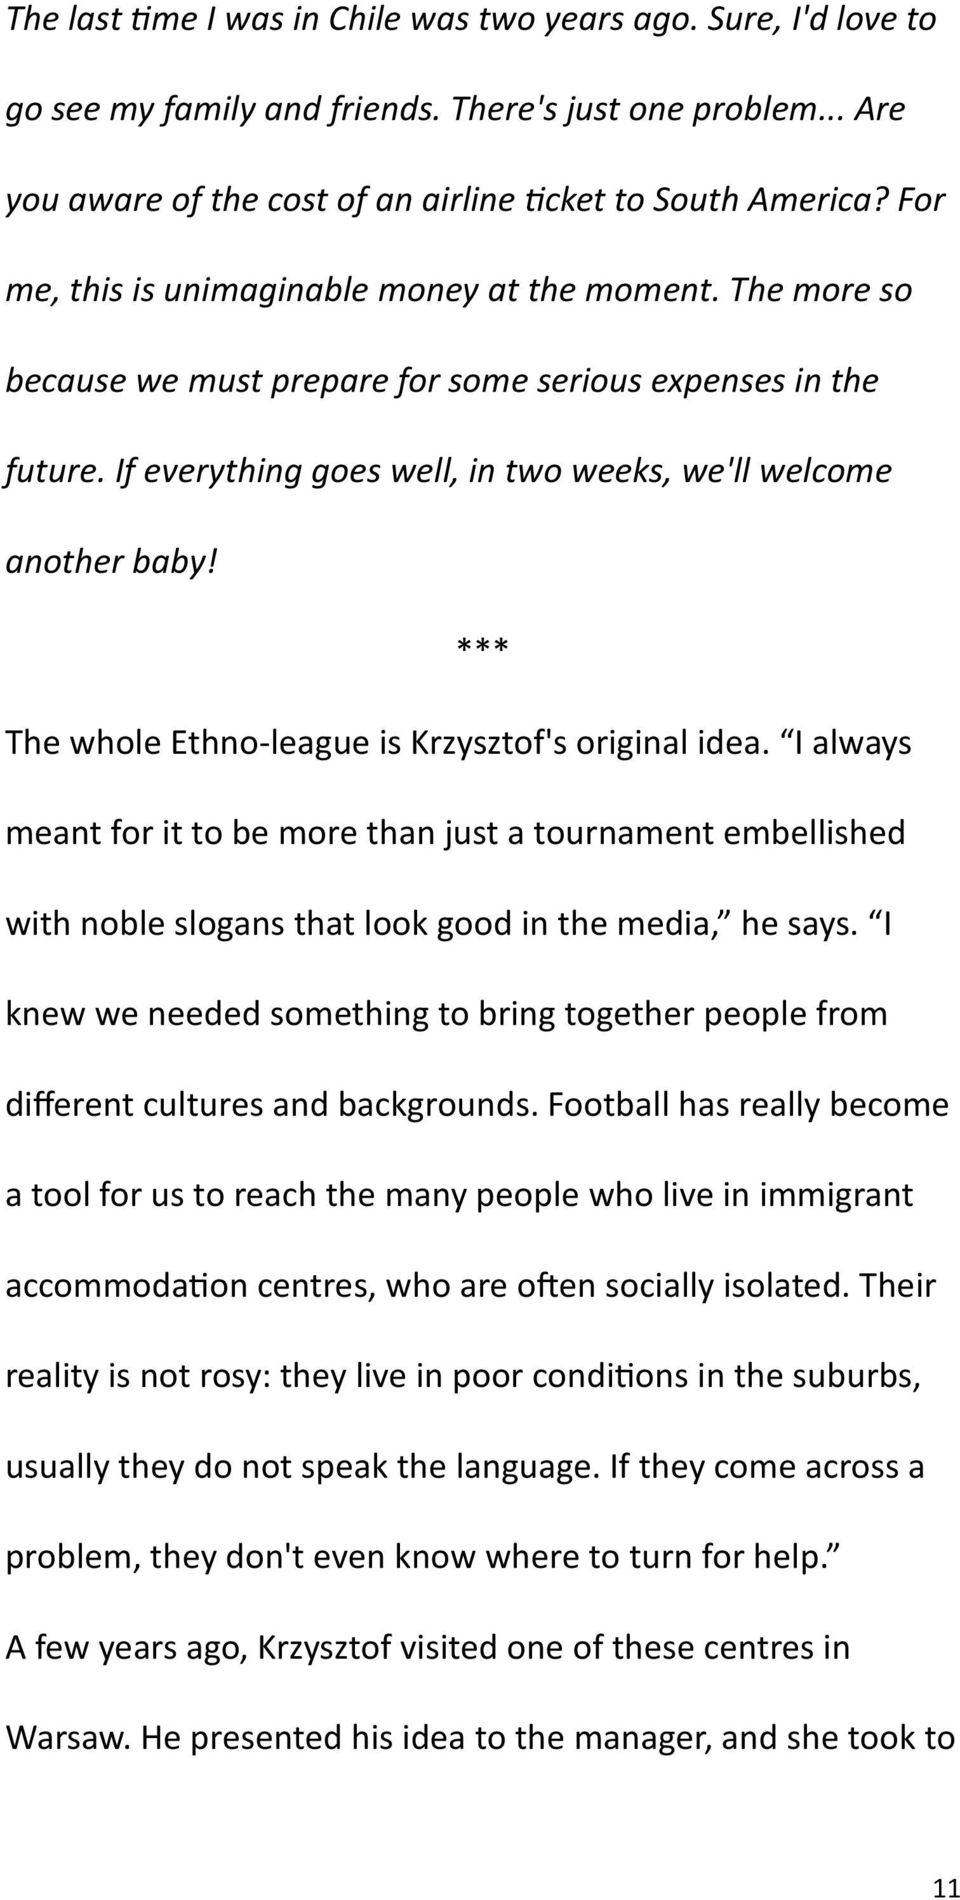 *** The whole Ethno-league is Krzysztof's original idea. I always meant for it to be more than just a tournament embellished with noble slogans that look good in the media, he says.